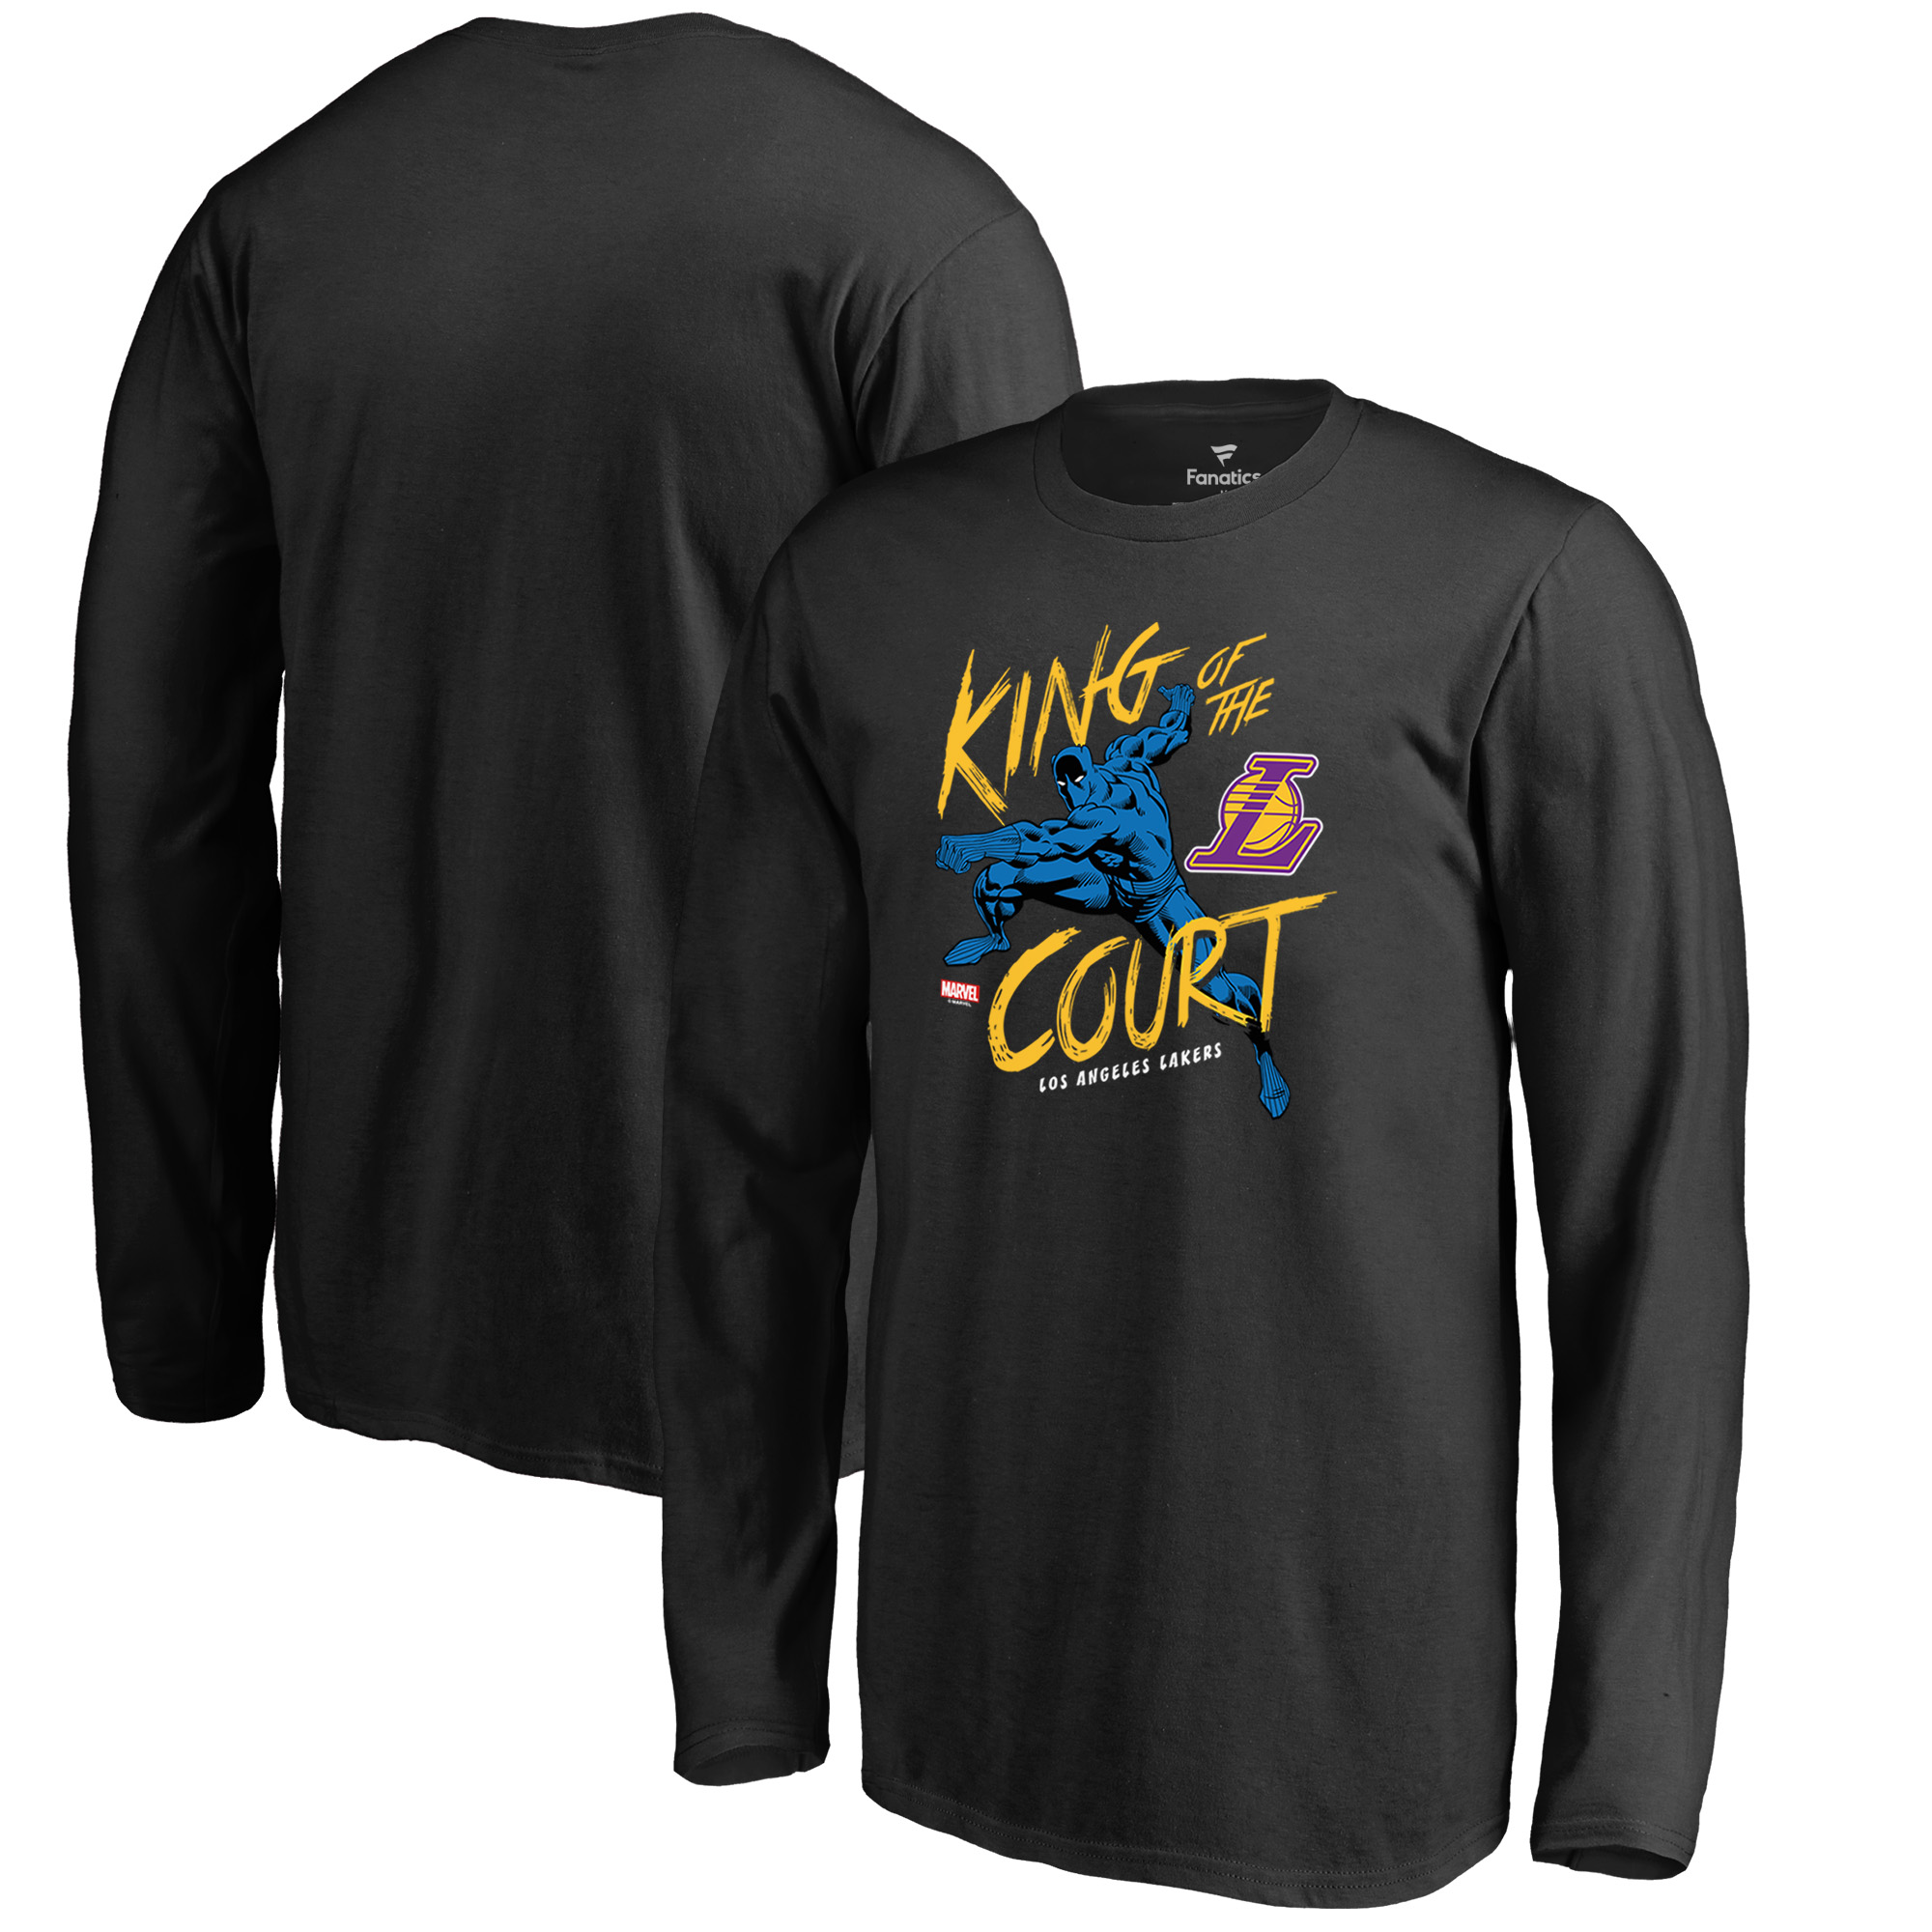 Los Angeles Lakers Fanatics Branded Youth Marvel Black Panther King of the Court Long Sleeve T-Shirt - Black